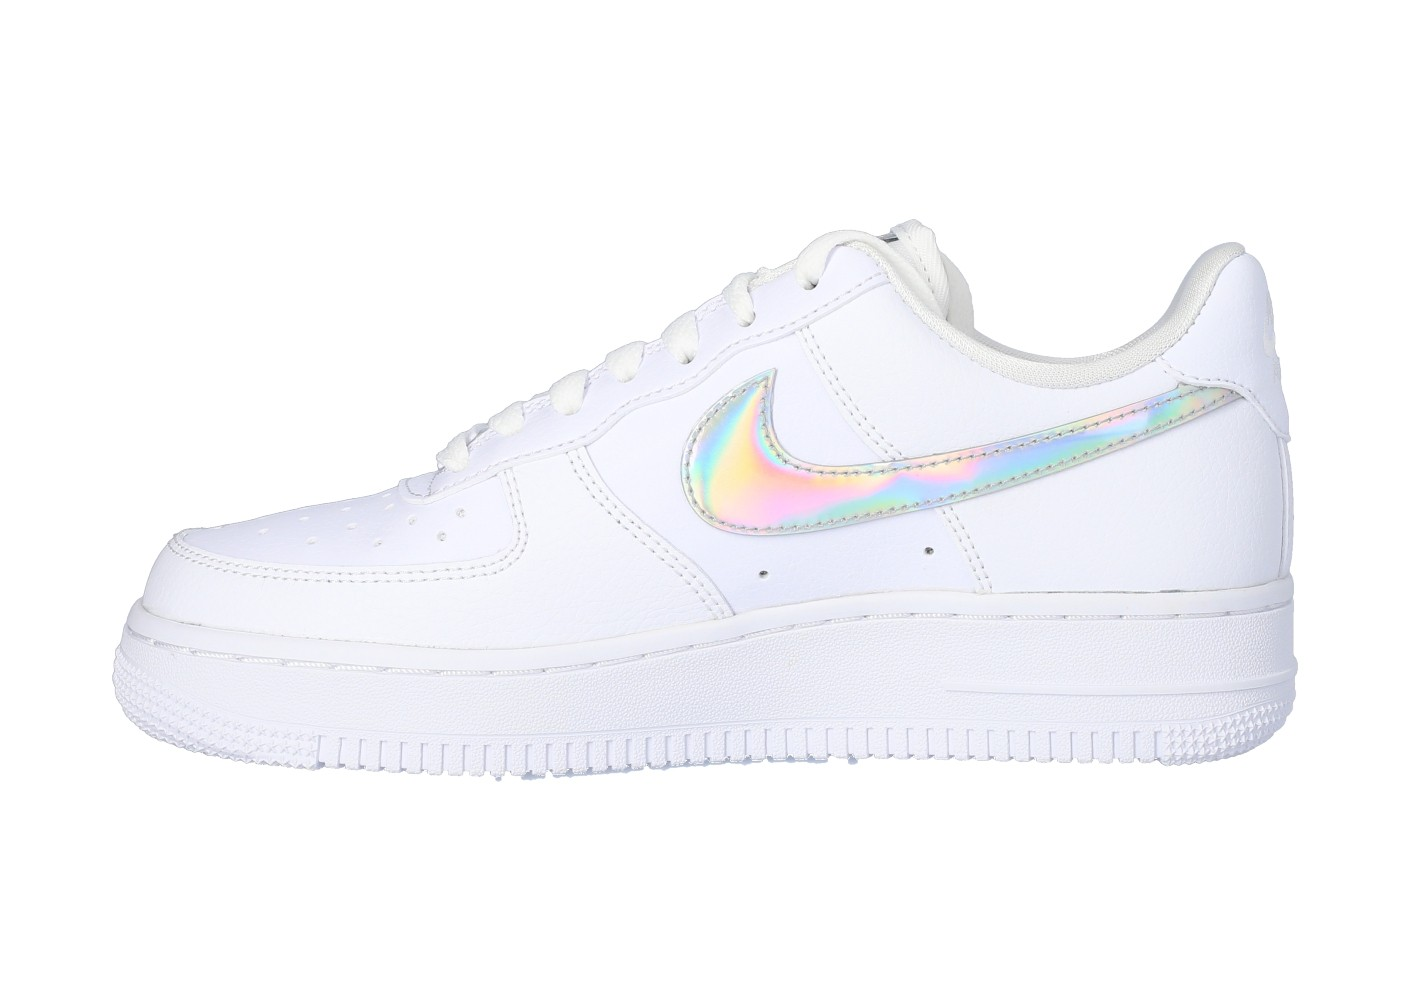 Nike Air Force 1 '07 iridescent Swoosh Chaussures Baskets